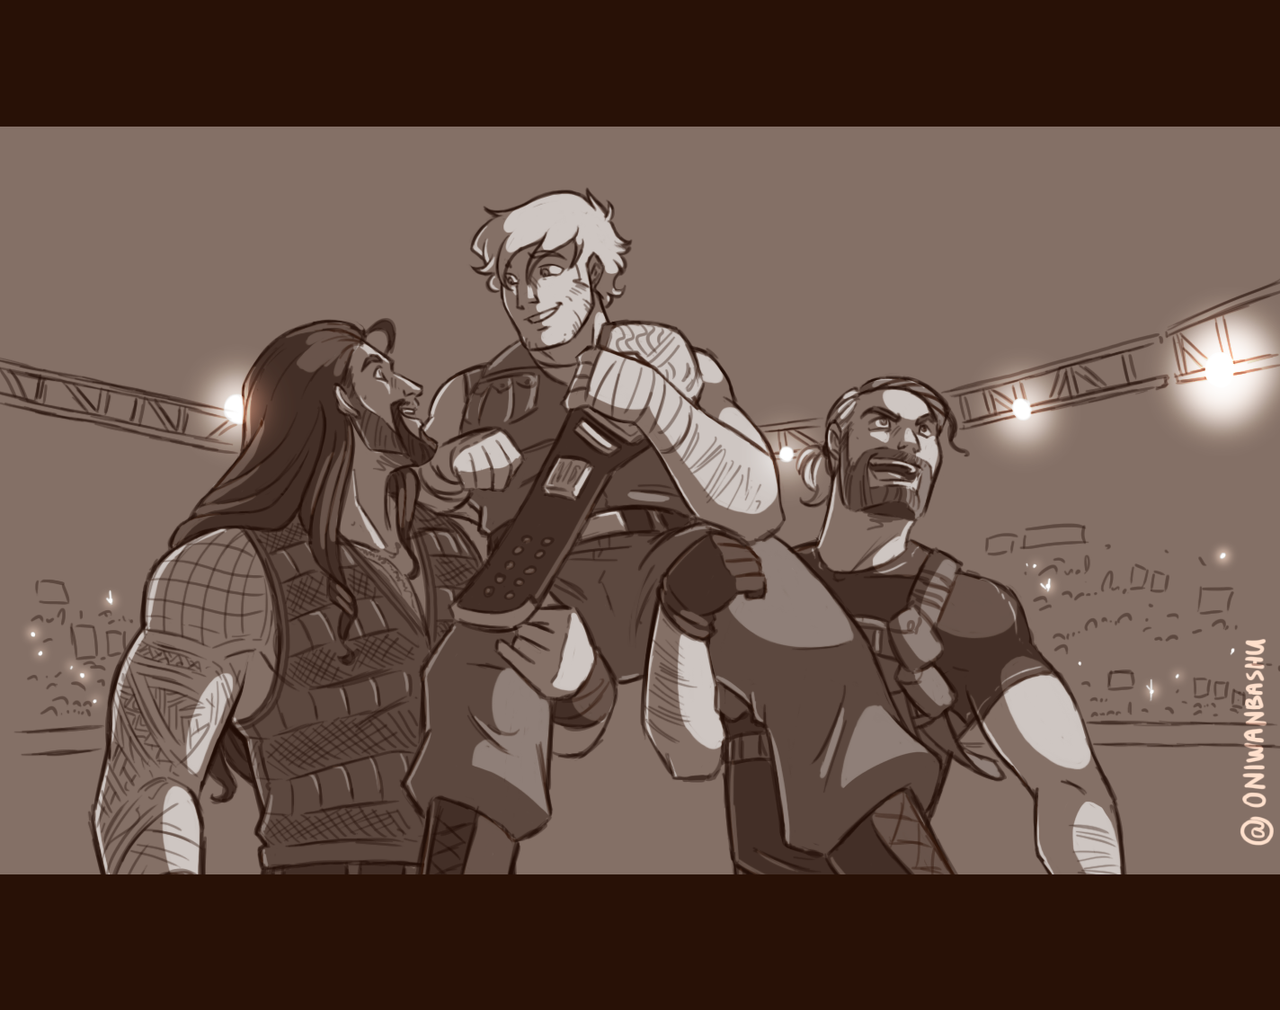 wwe__for_a_moment_like_this_by_oniwanbashu-d8xvjmf.png